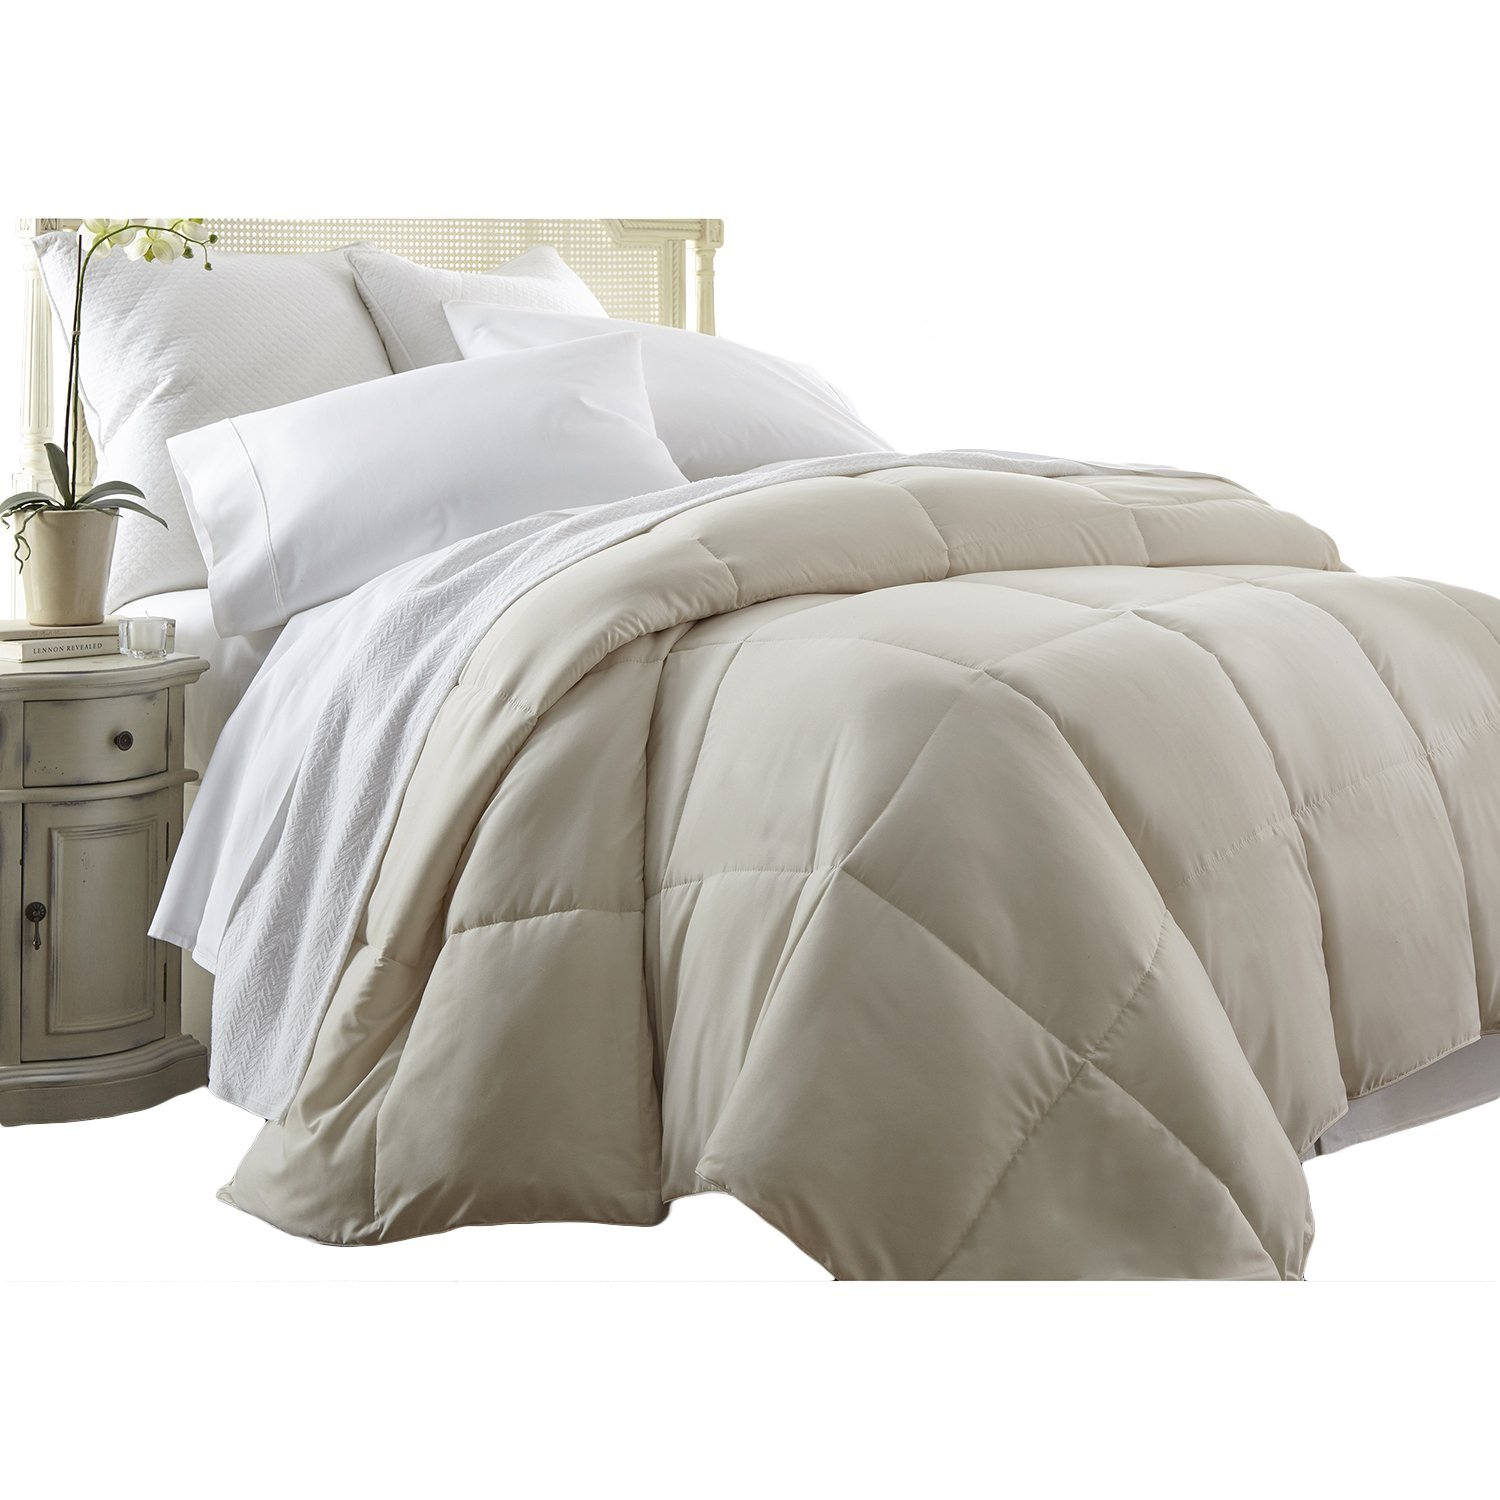 set stratton decor room king pin piece and comforter ivory black